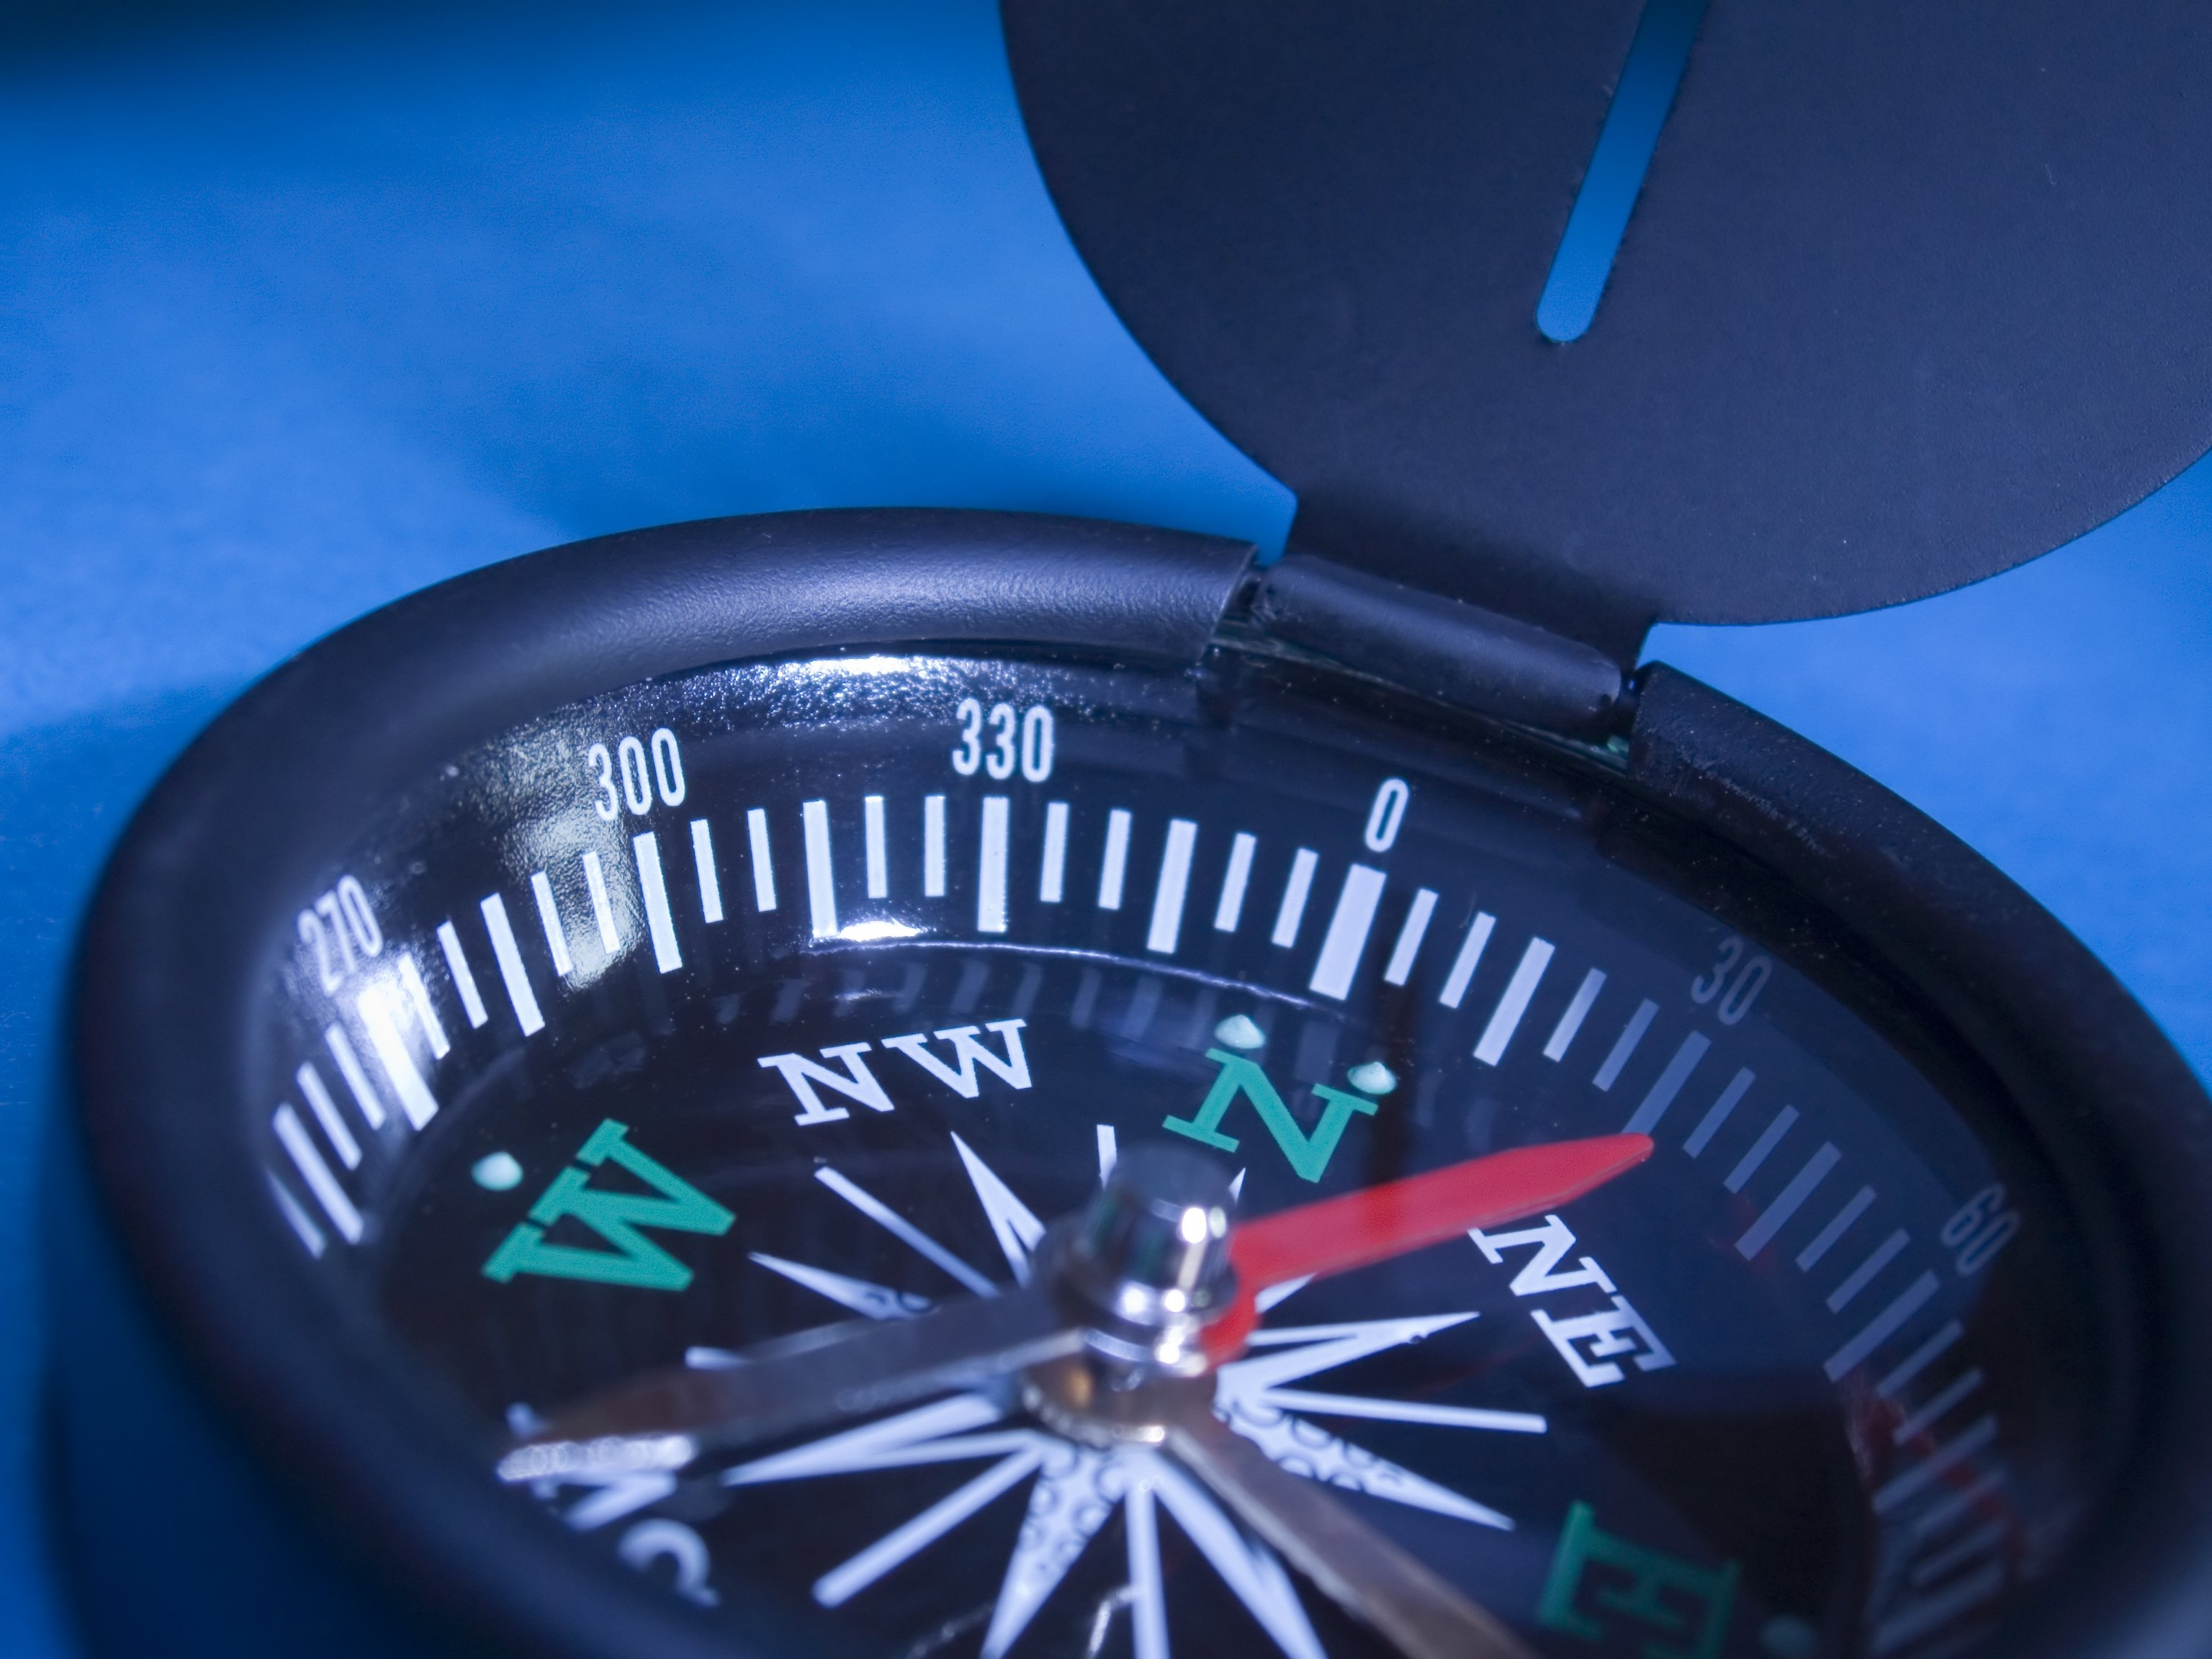 A compass to provide guidance toward the optimal asset allocation